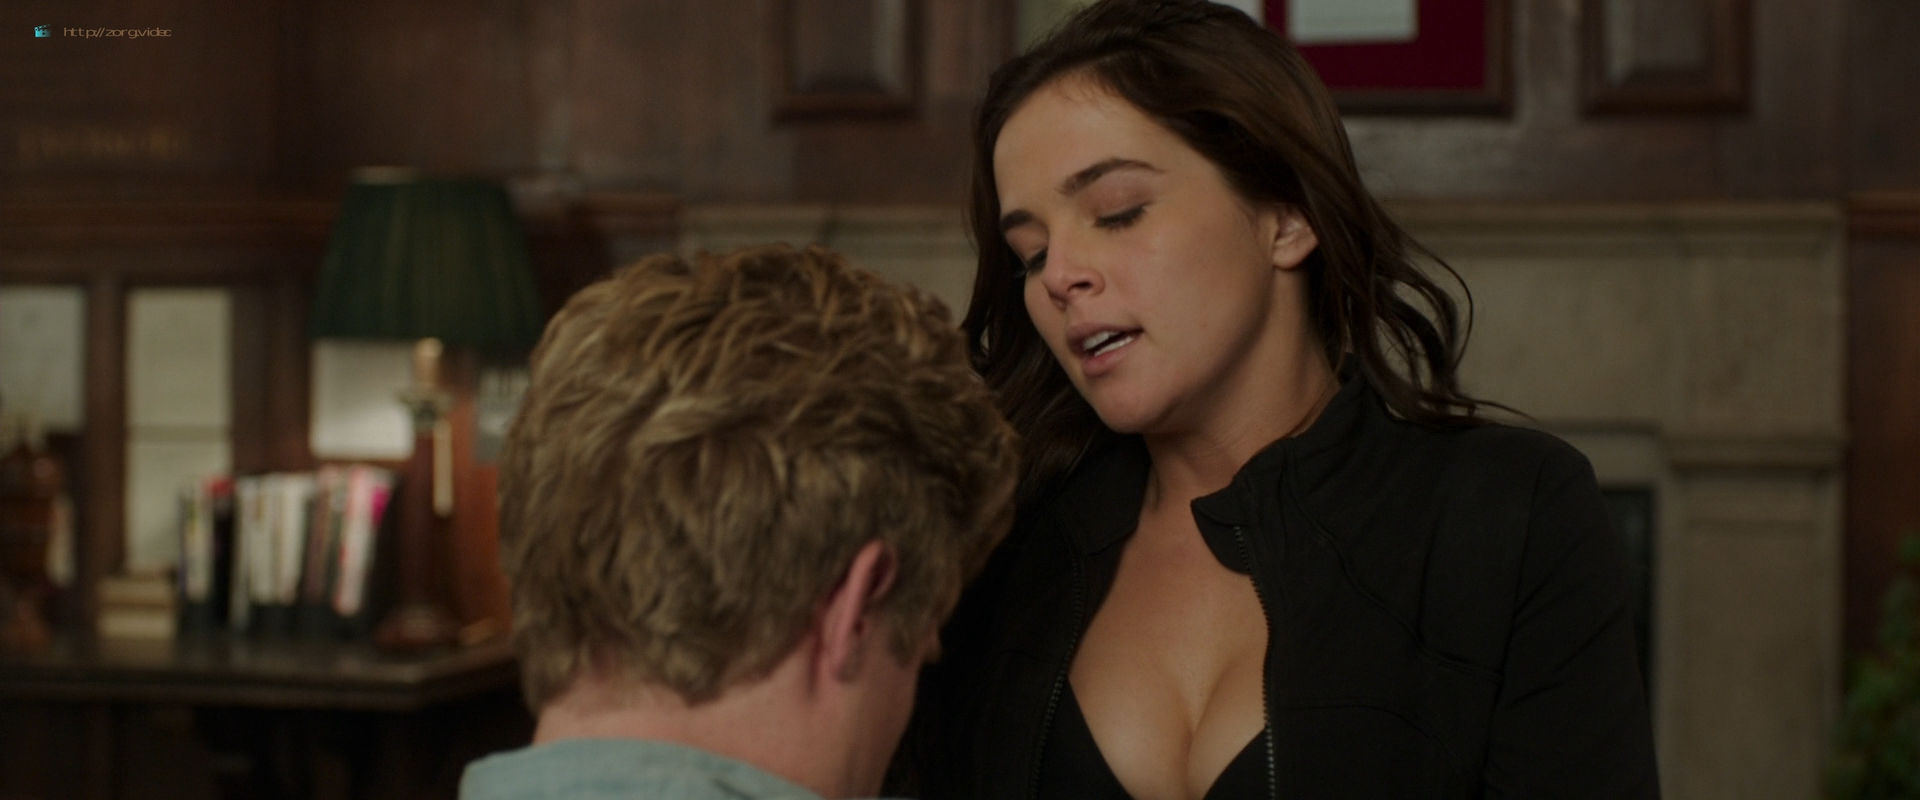 Zoey Deutch hot and sexy in black lingerie and some mild sex in - Vampire Academy (2014) HD 1080p BluRay (14)